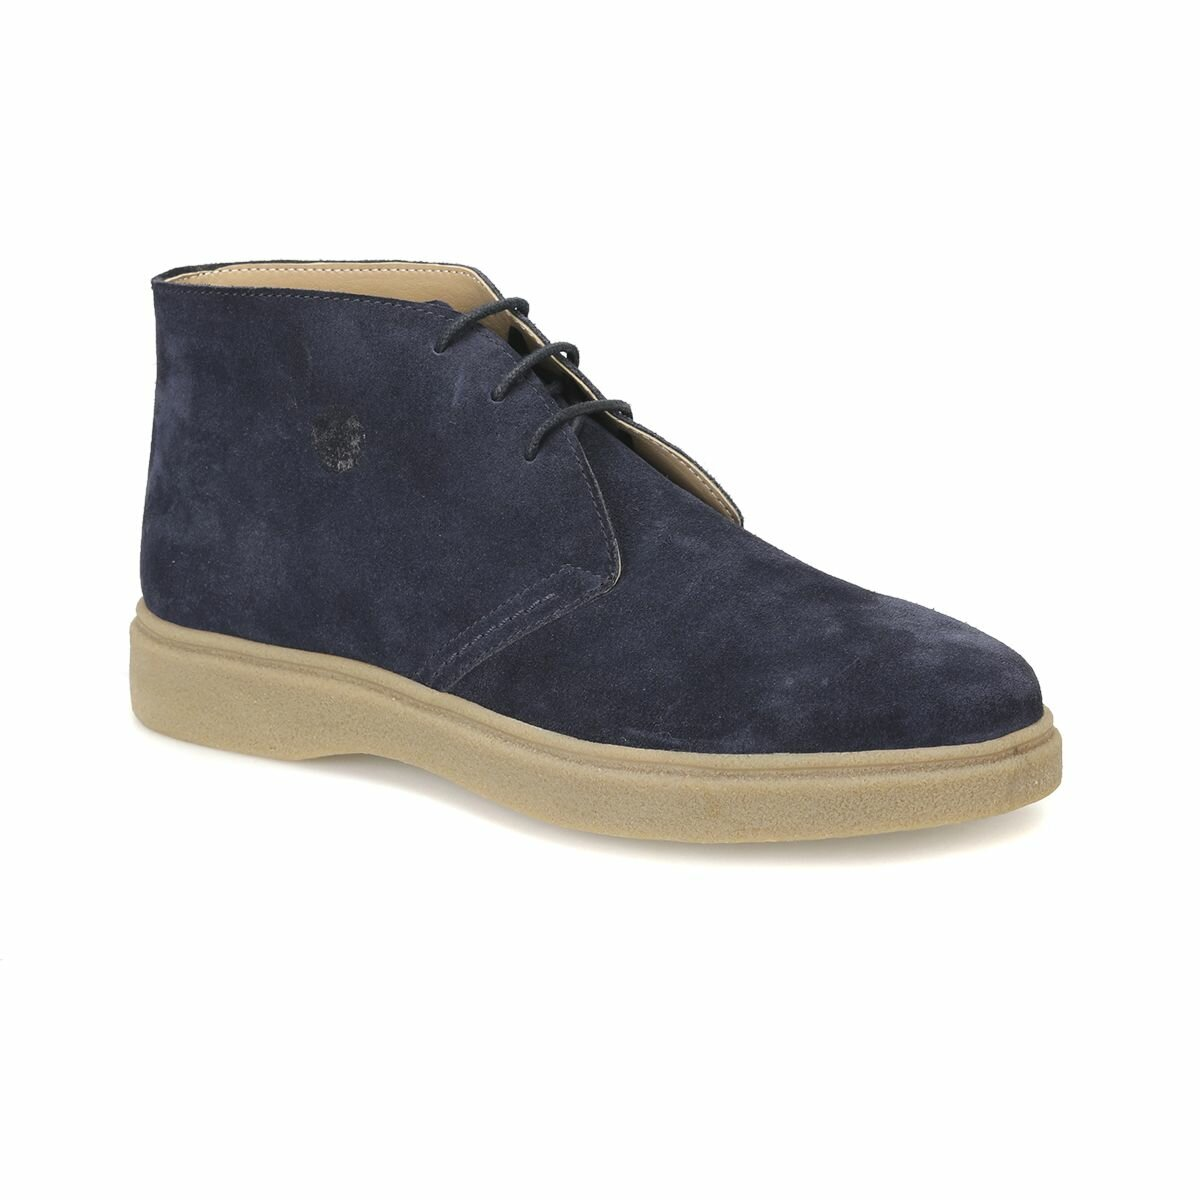 FLO 89427 Navy Blue Men 'S Shoes Forester